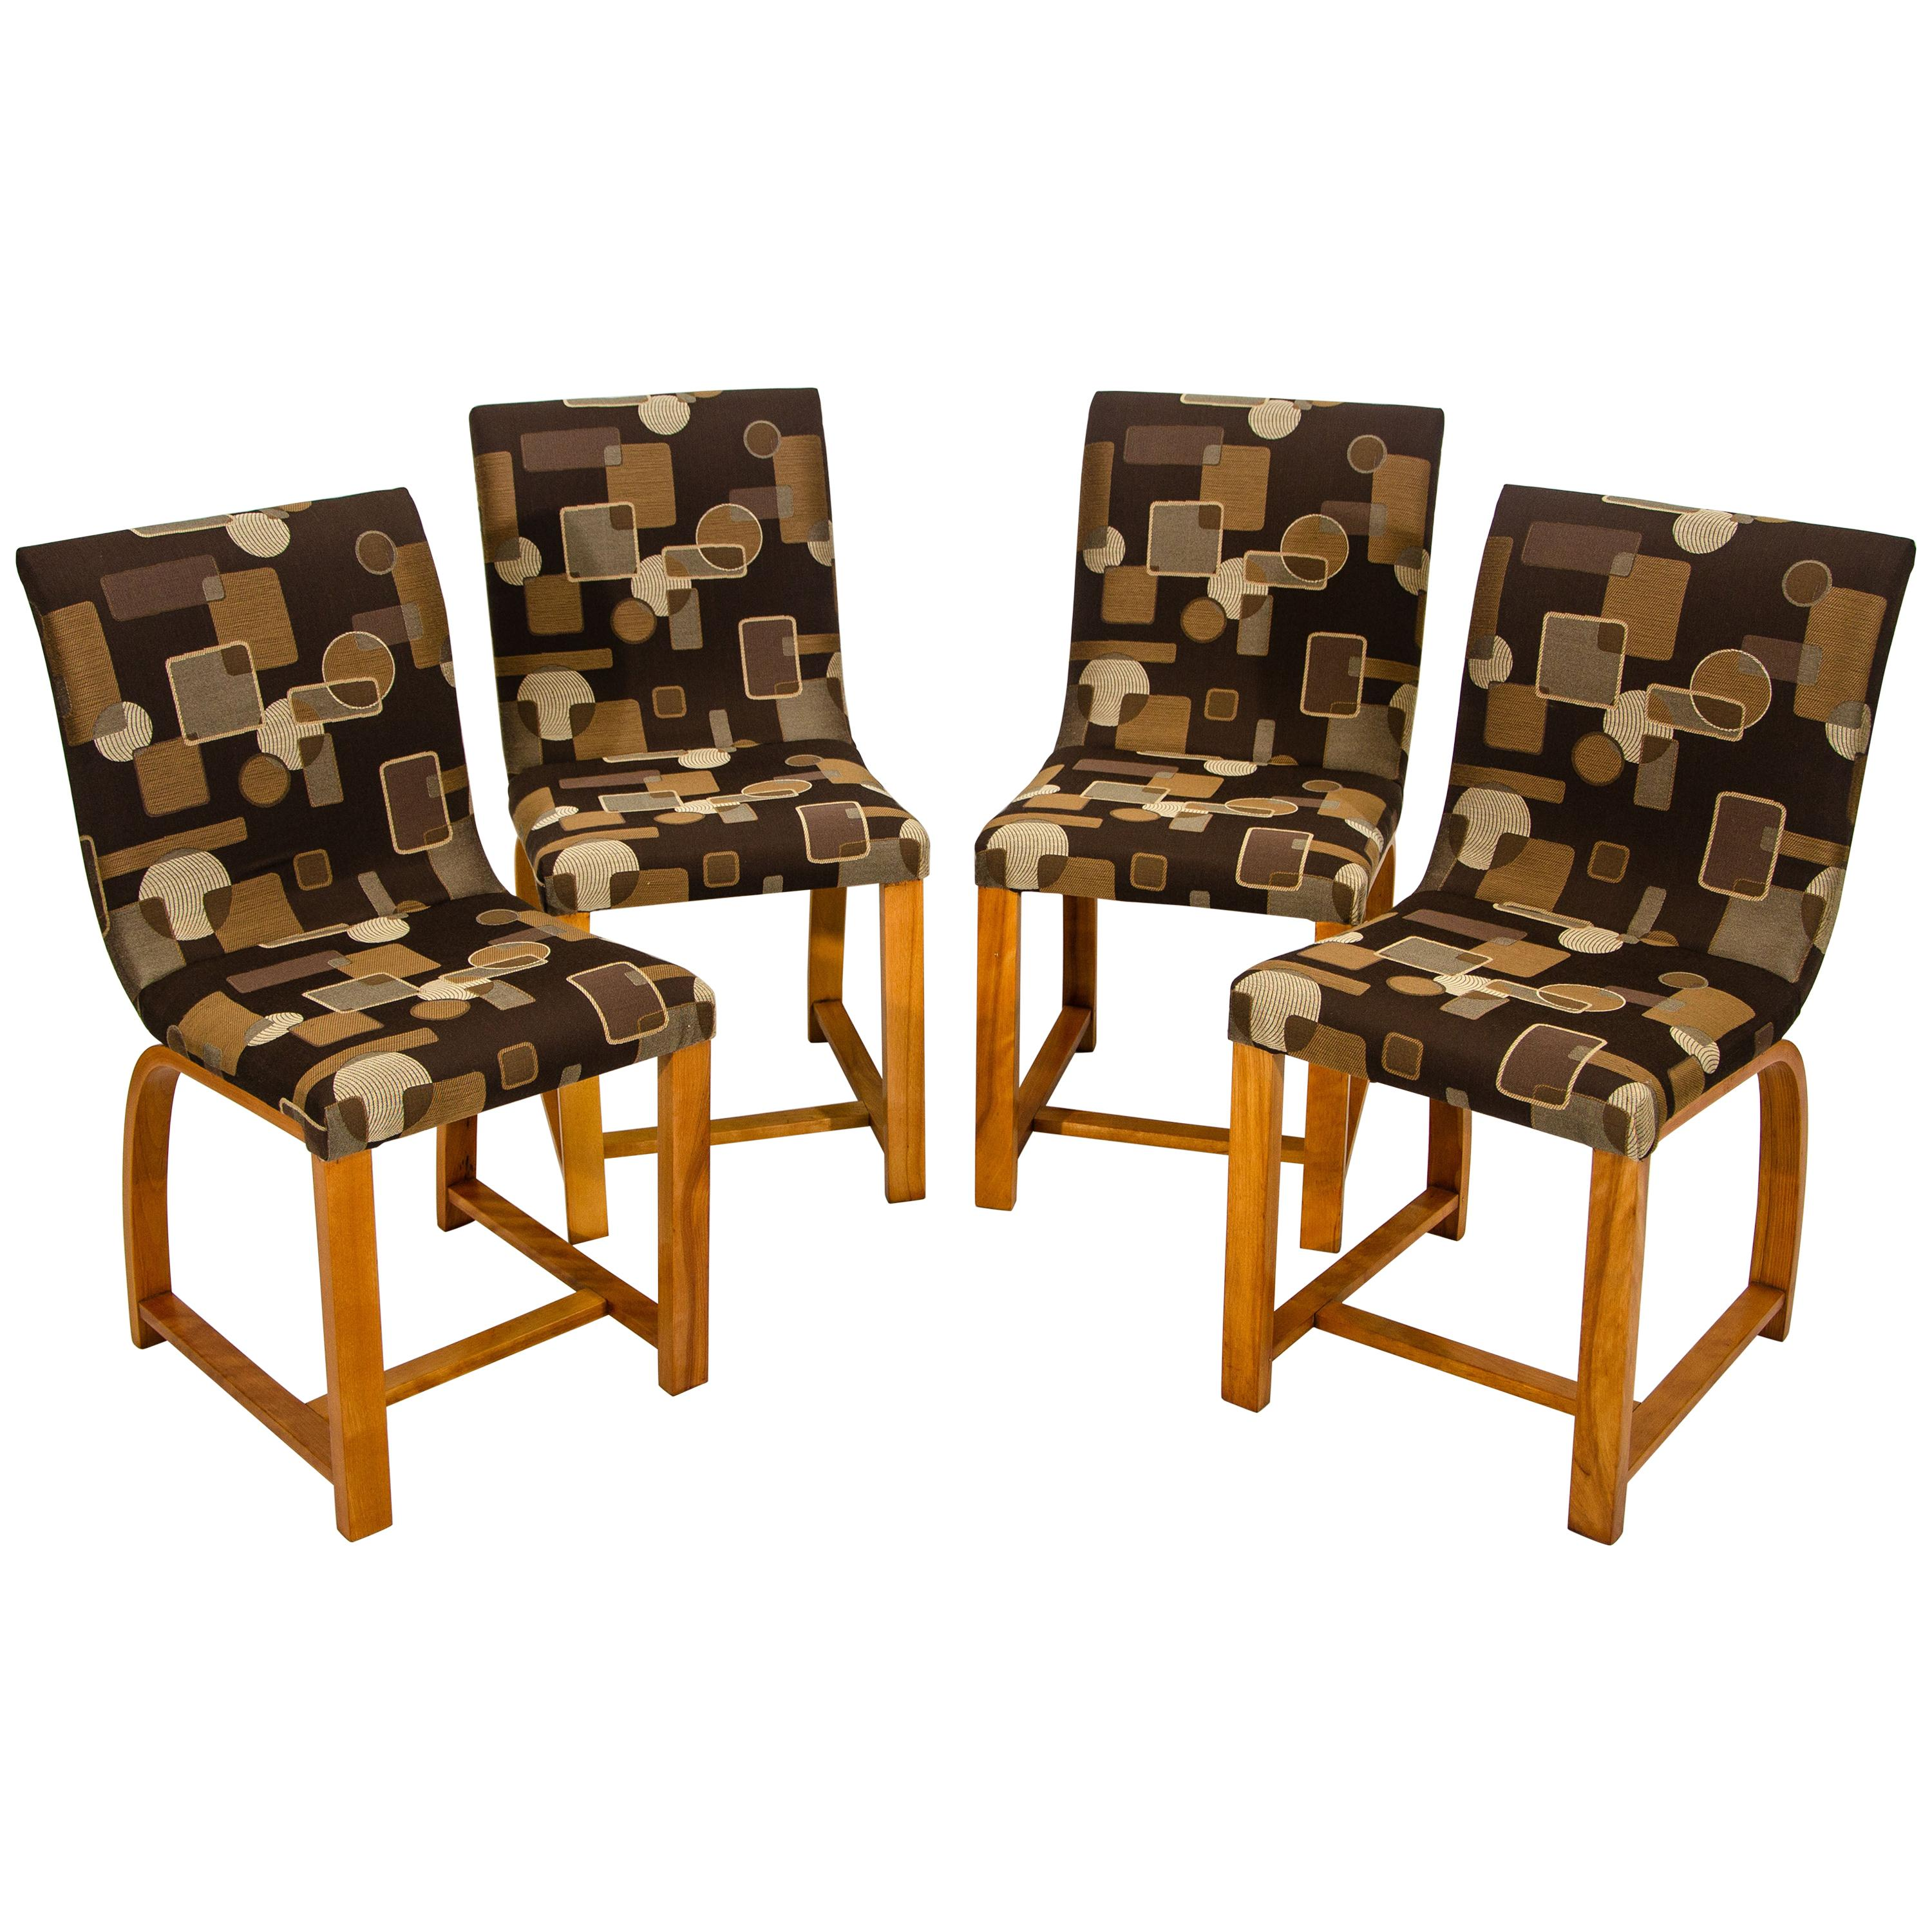 Set of Four Dining Chairs, Gilbert Rohde for Heywood Wakefield